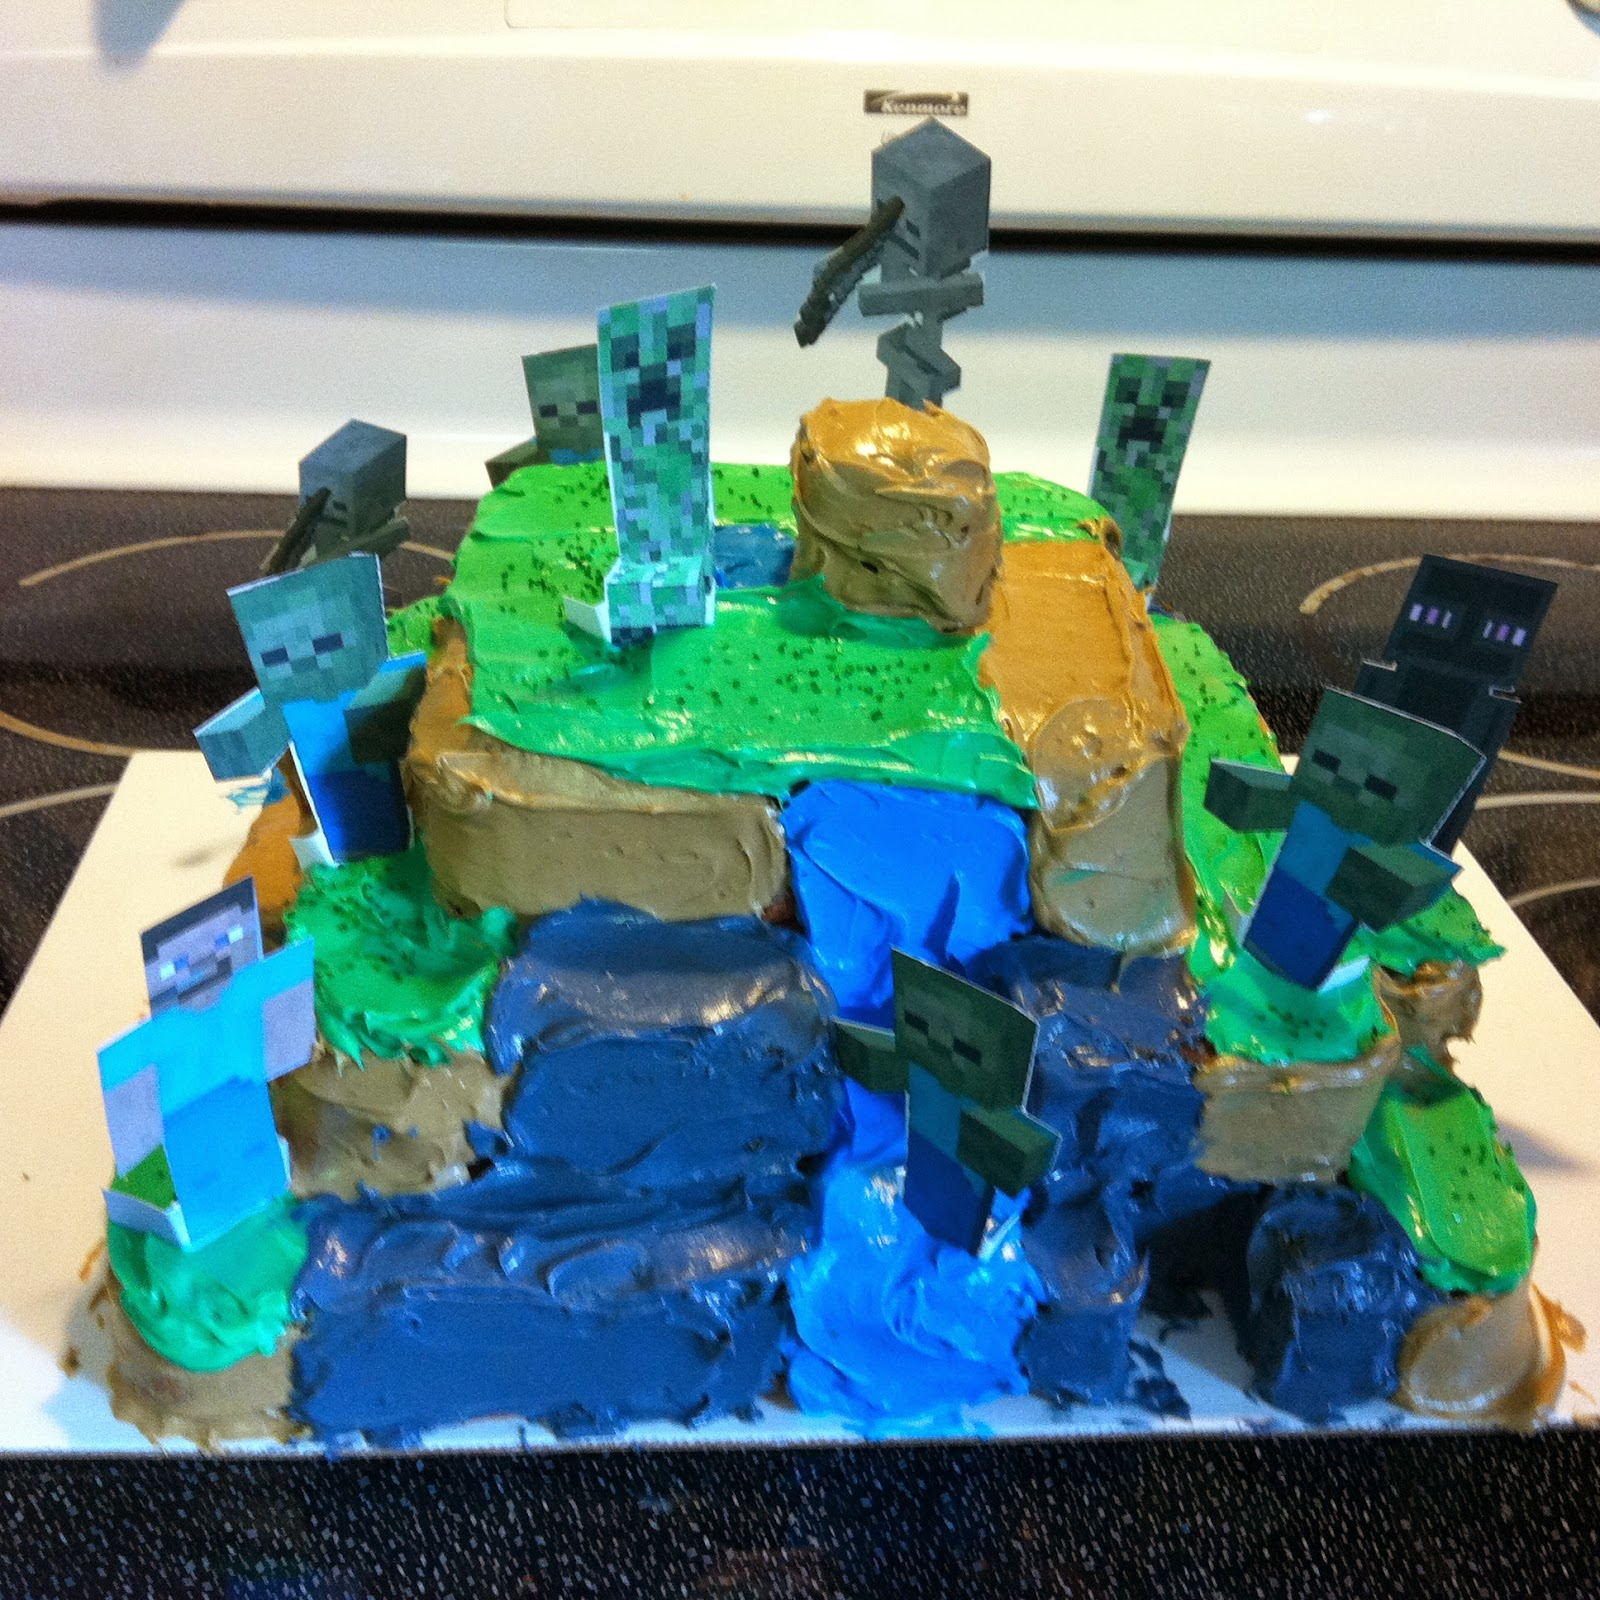 Complete cake with Steve, zombies, skeletons, creepers, and Enderman.